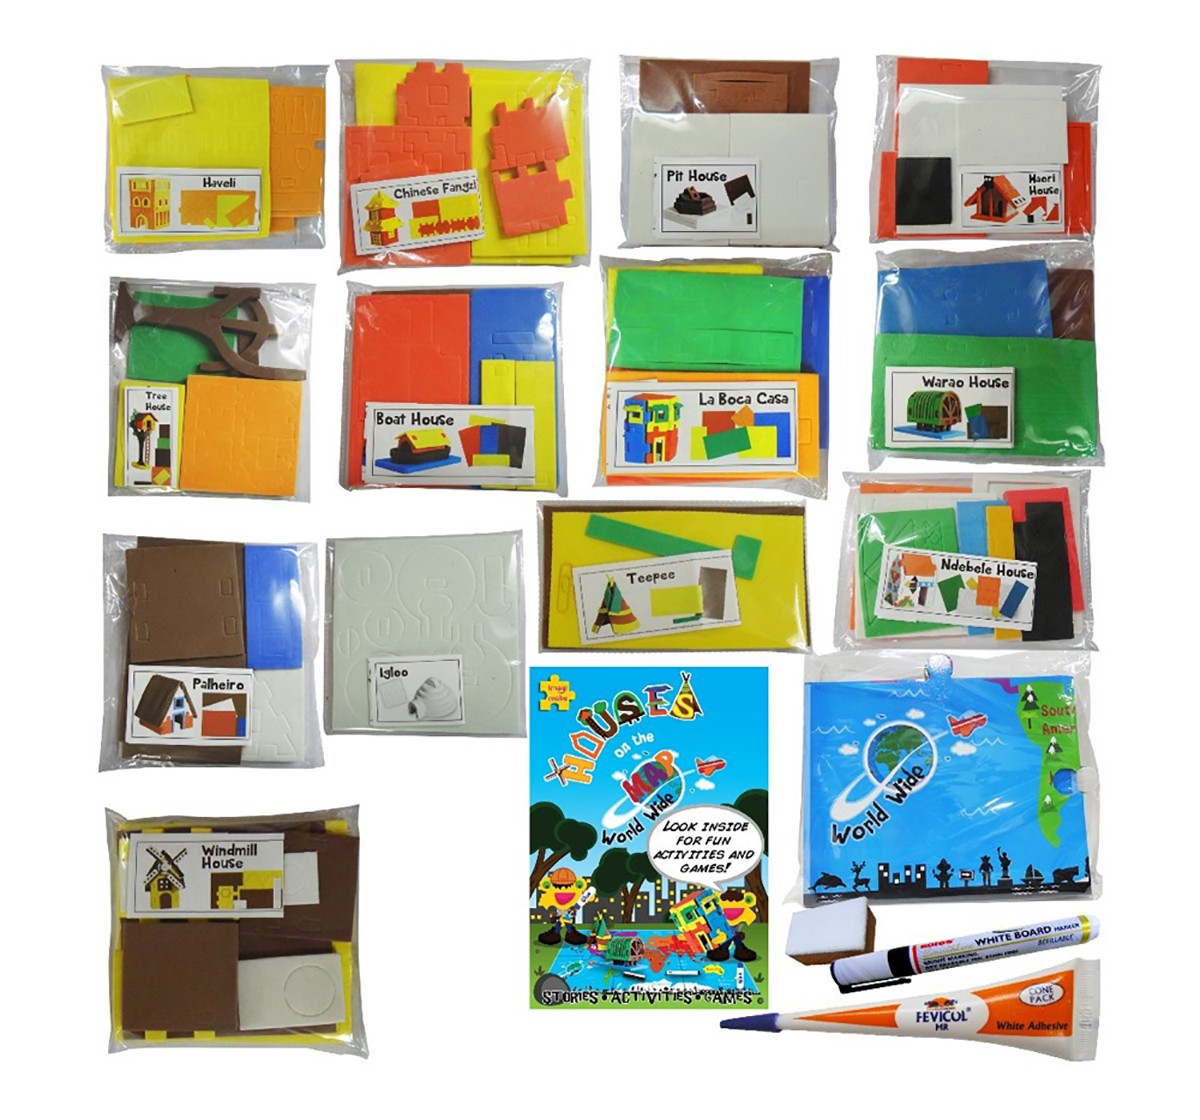 Imagimake World Wide Houses On The Map DIY Art & Craft Kit for Kids age 5Y+